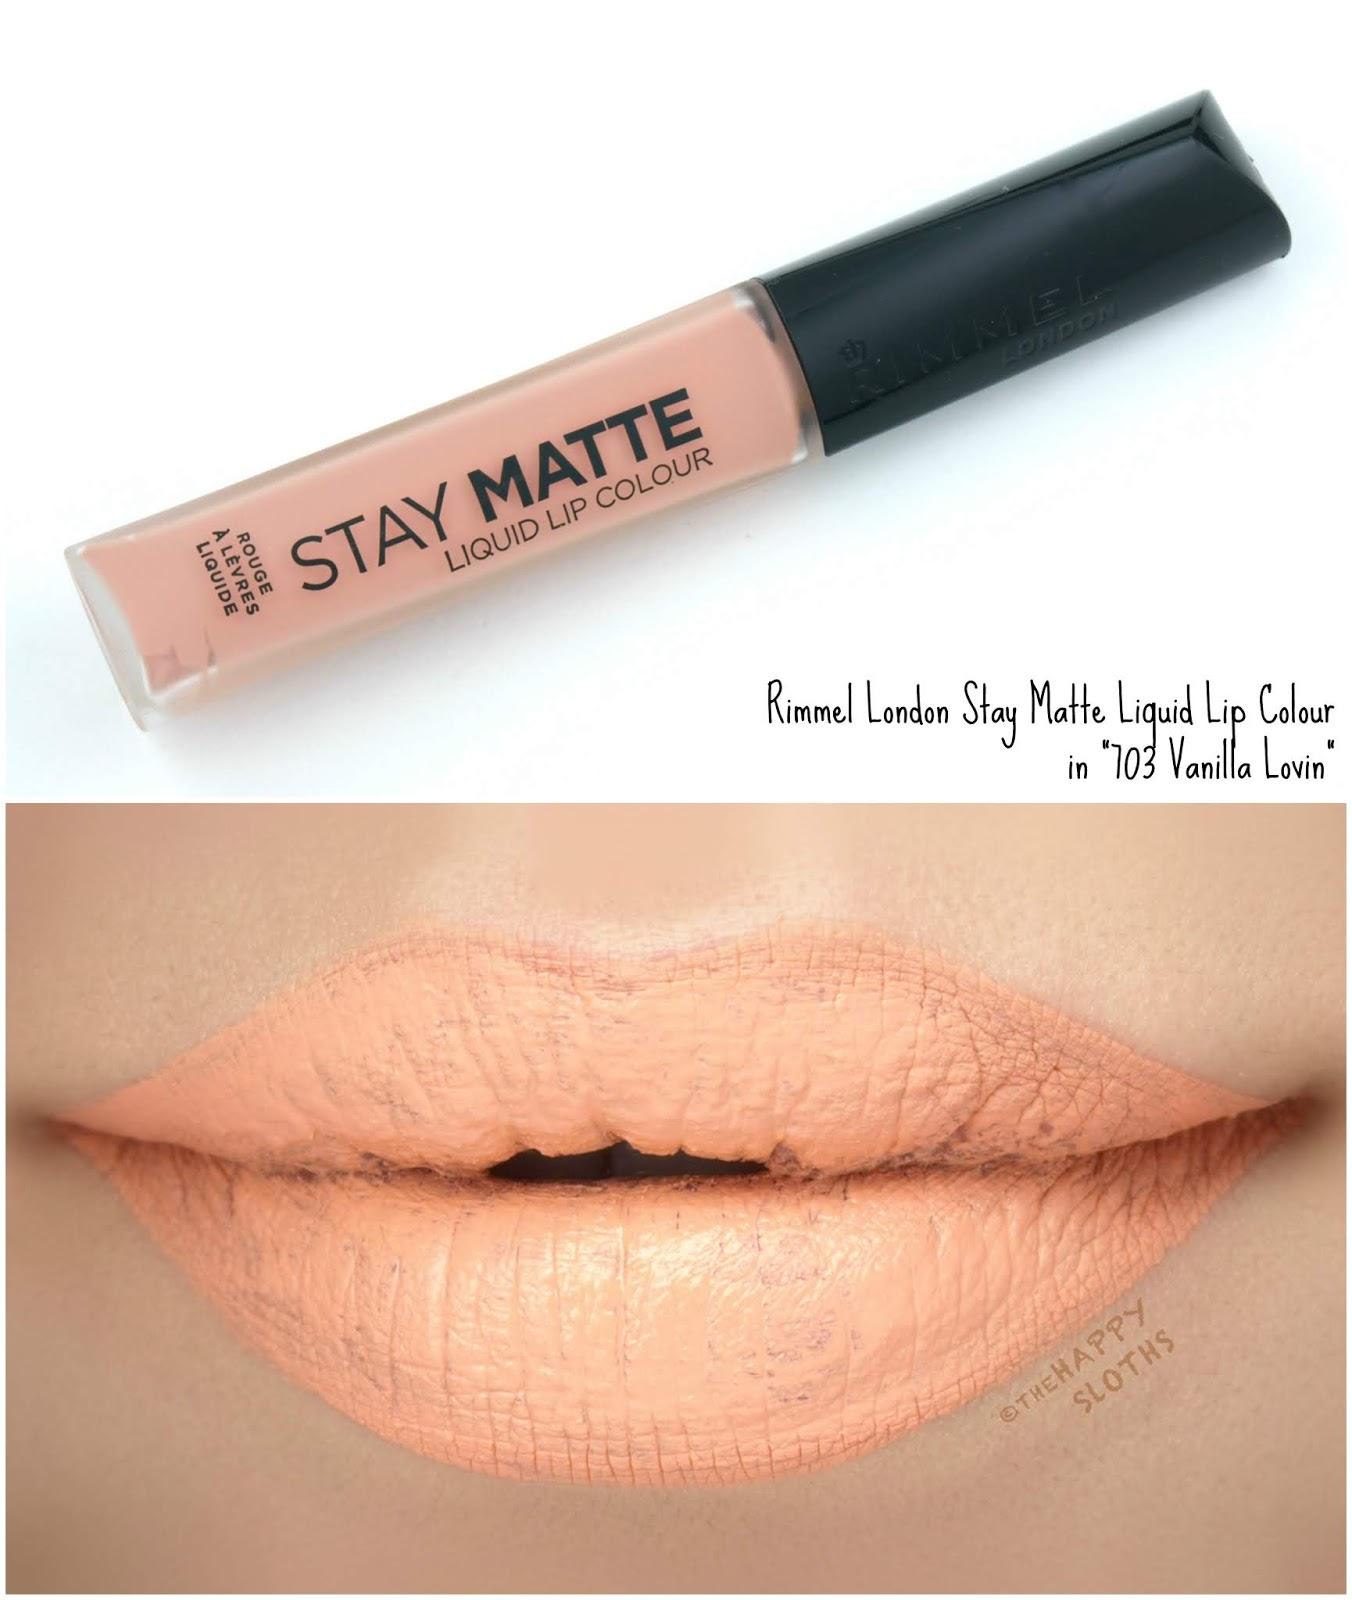 "Rimmel London | Stay Matte Liquid Lip Colour in ""703 Vanilla Lovin"": Review and Swatches"